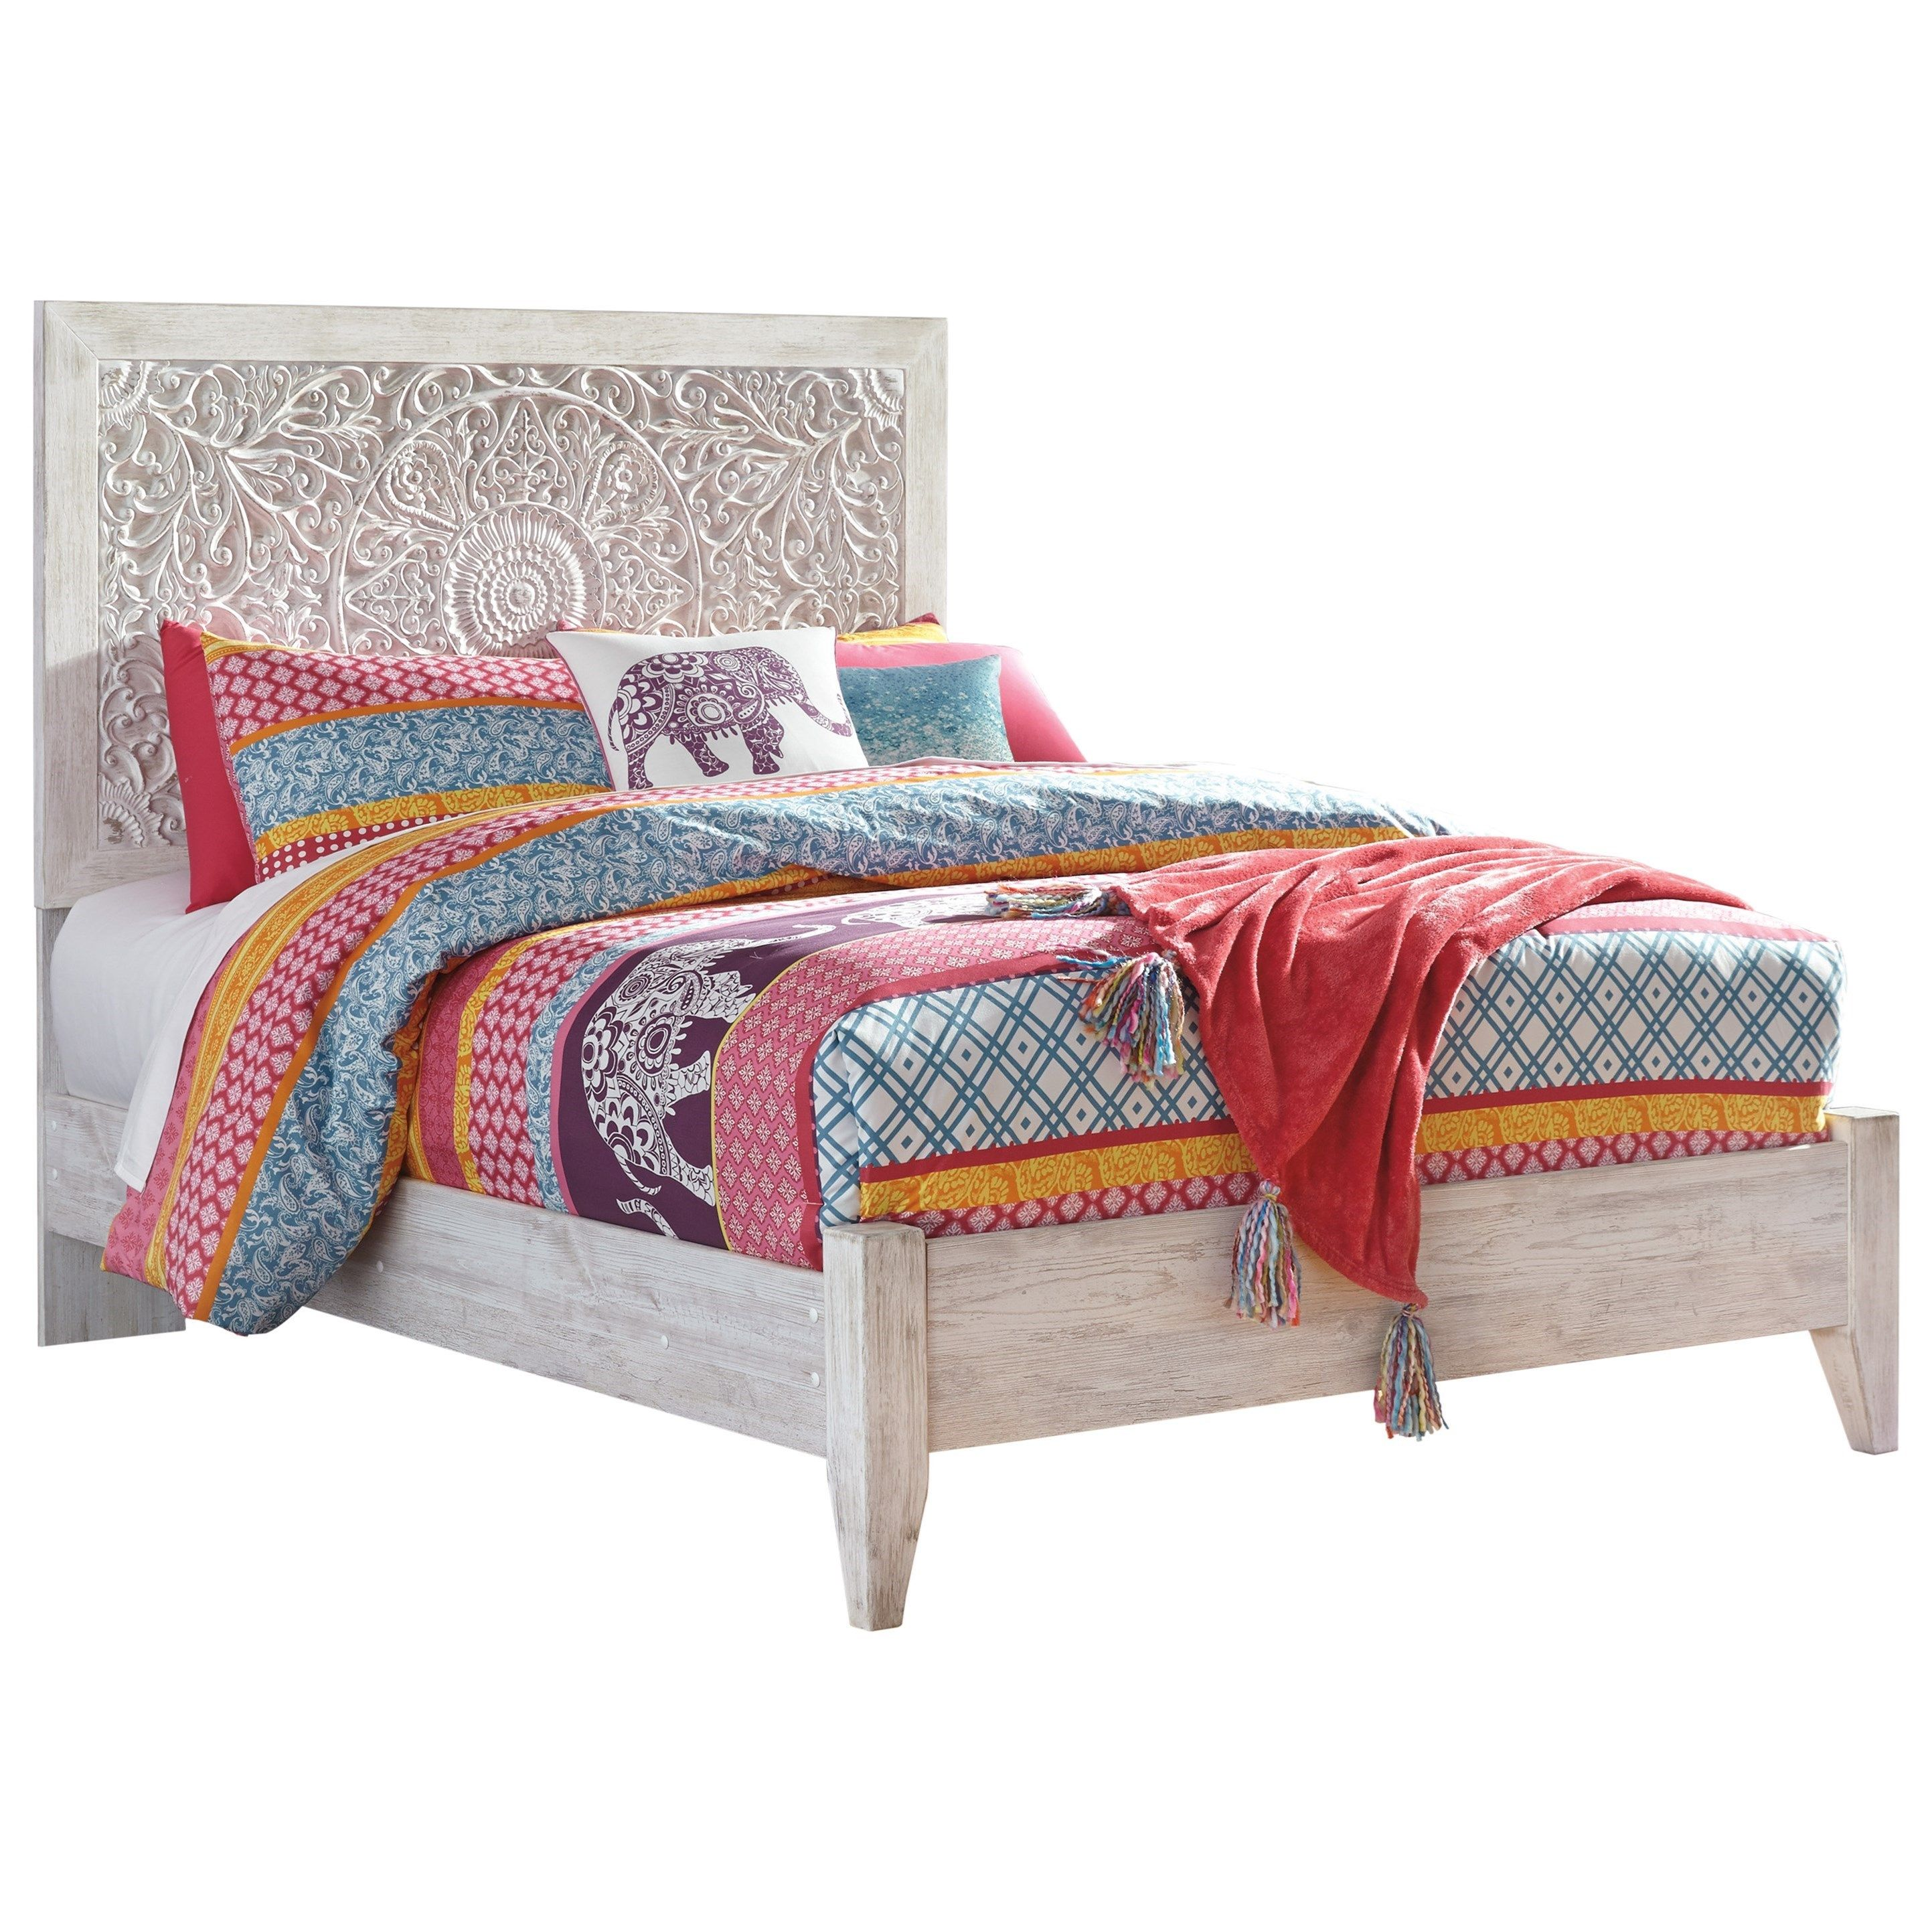 Paxberry Full Panel Bed with Carved Detail Headboard by